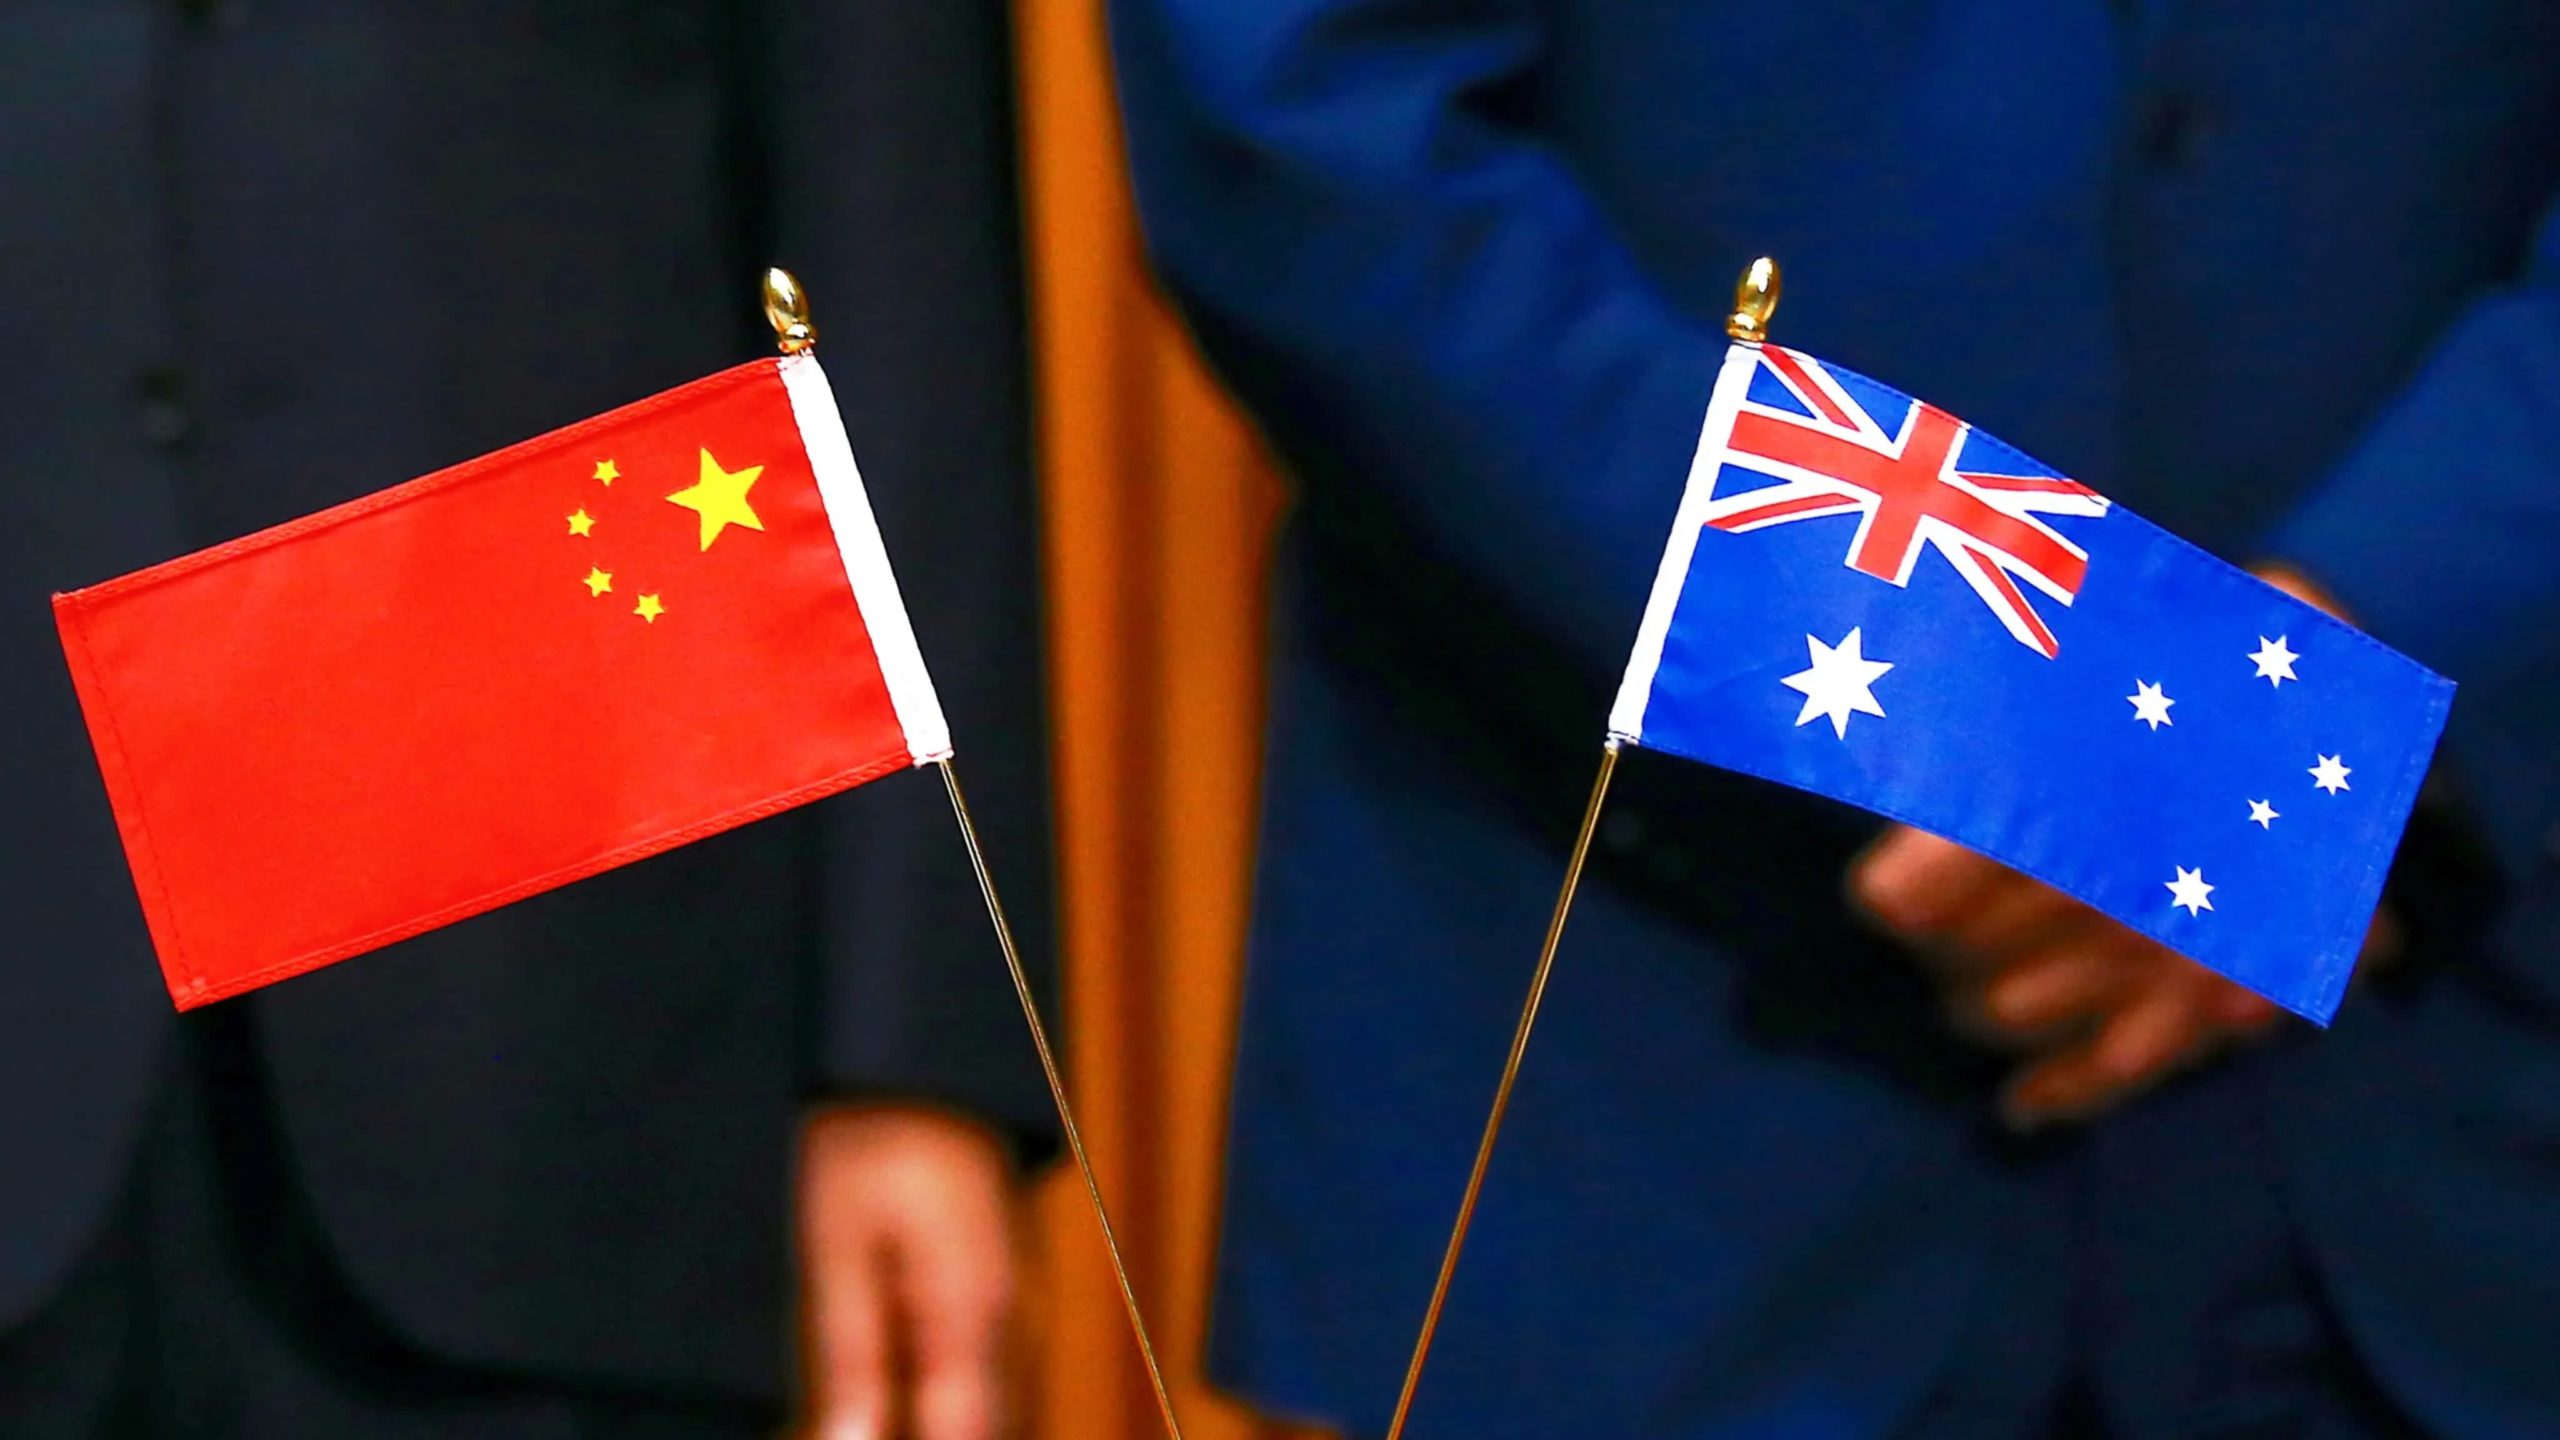 china and australia flags free trade agreement